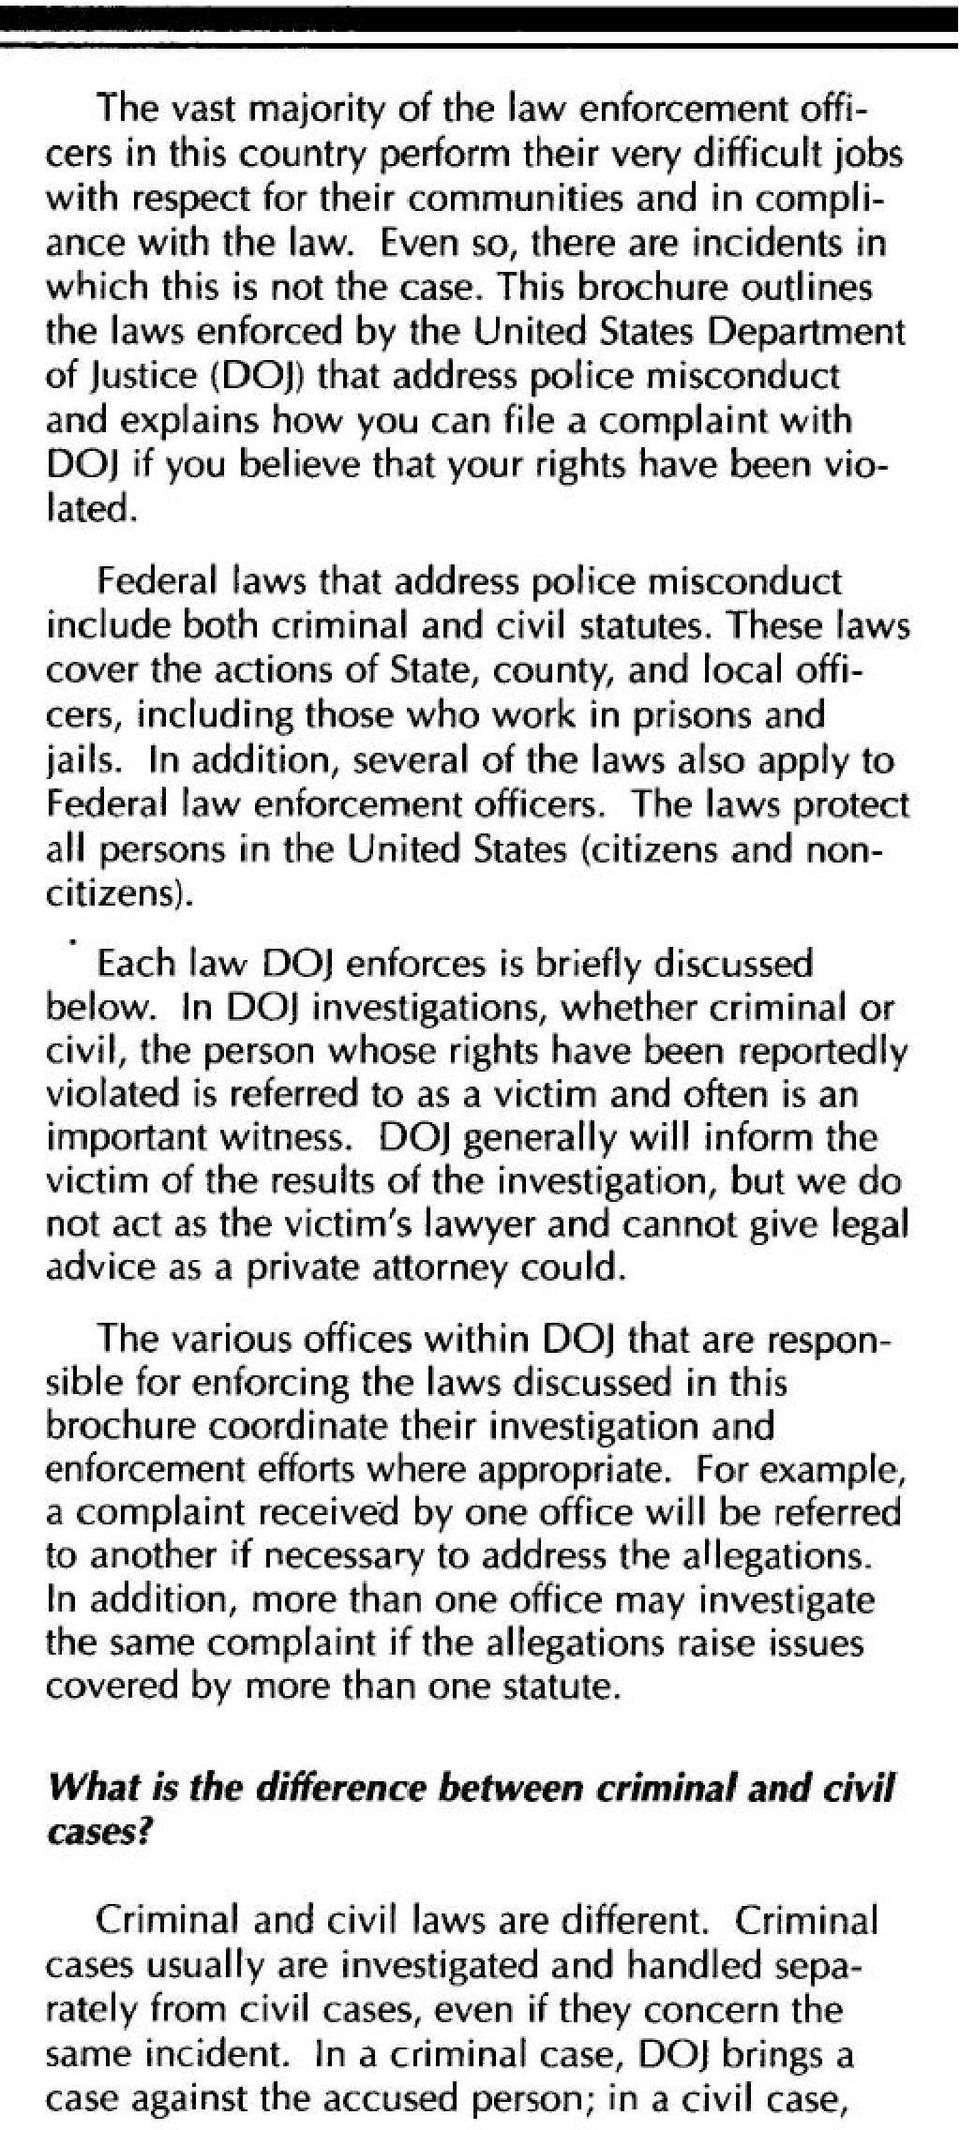 This brochure outlines the laws enforced by the United States Department of Justice (DOJ) that address police misconduct and explains how you can file a complaint with DOJ if you believe that your